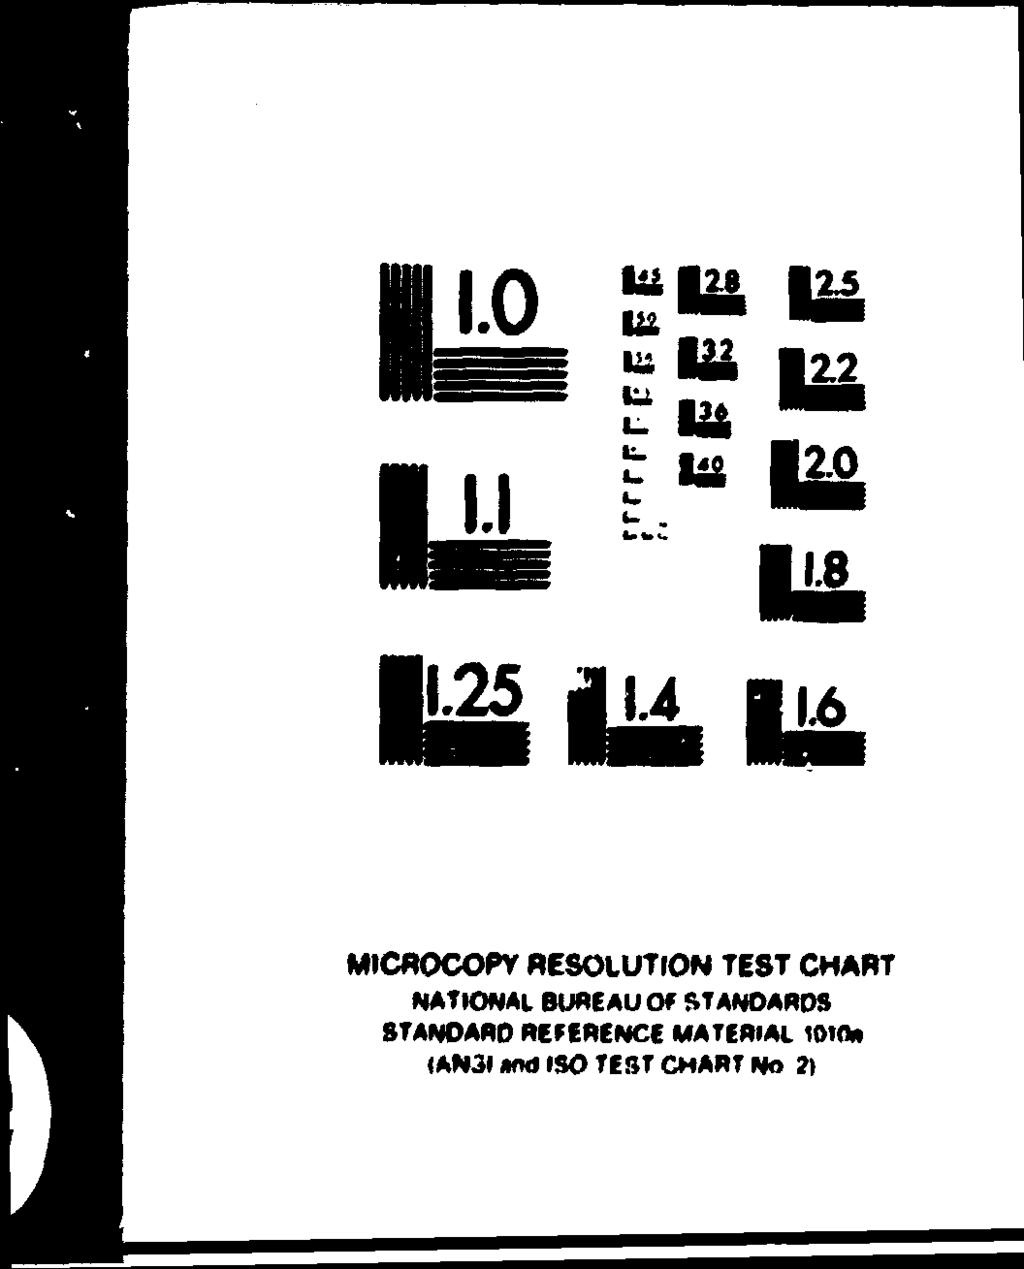 MICROCOPY RESOLUTION TEST CHART